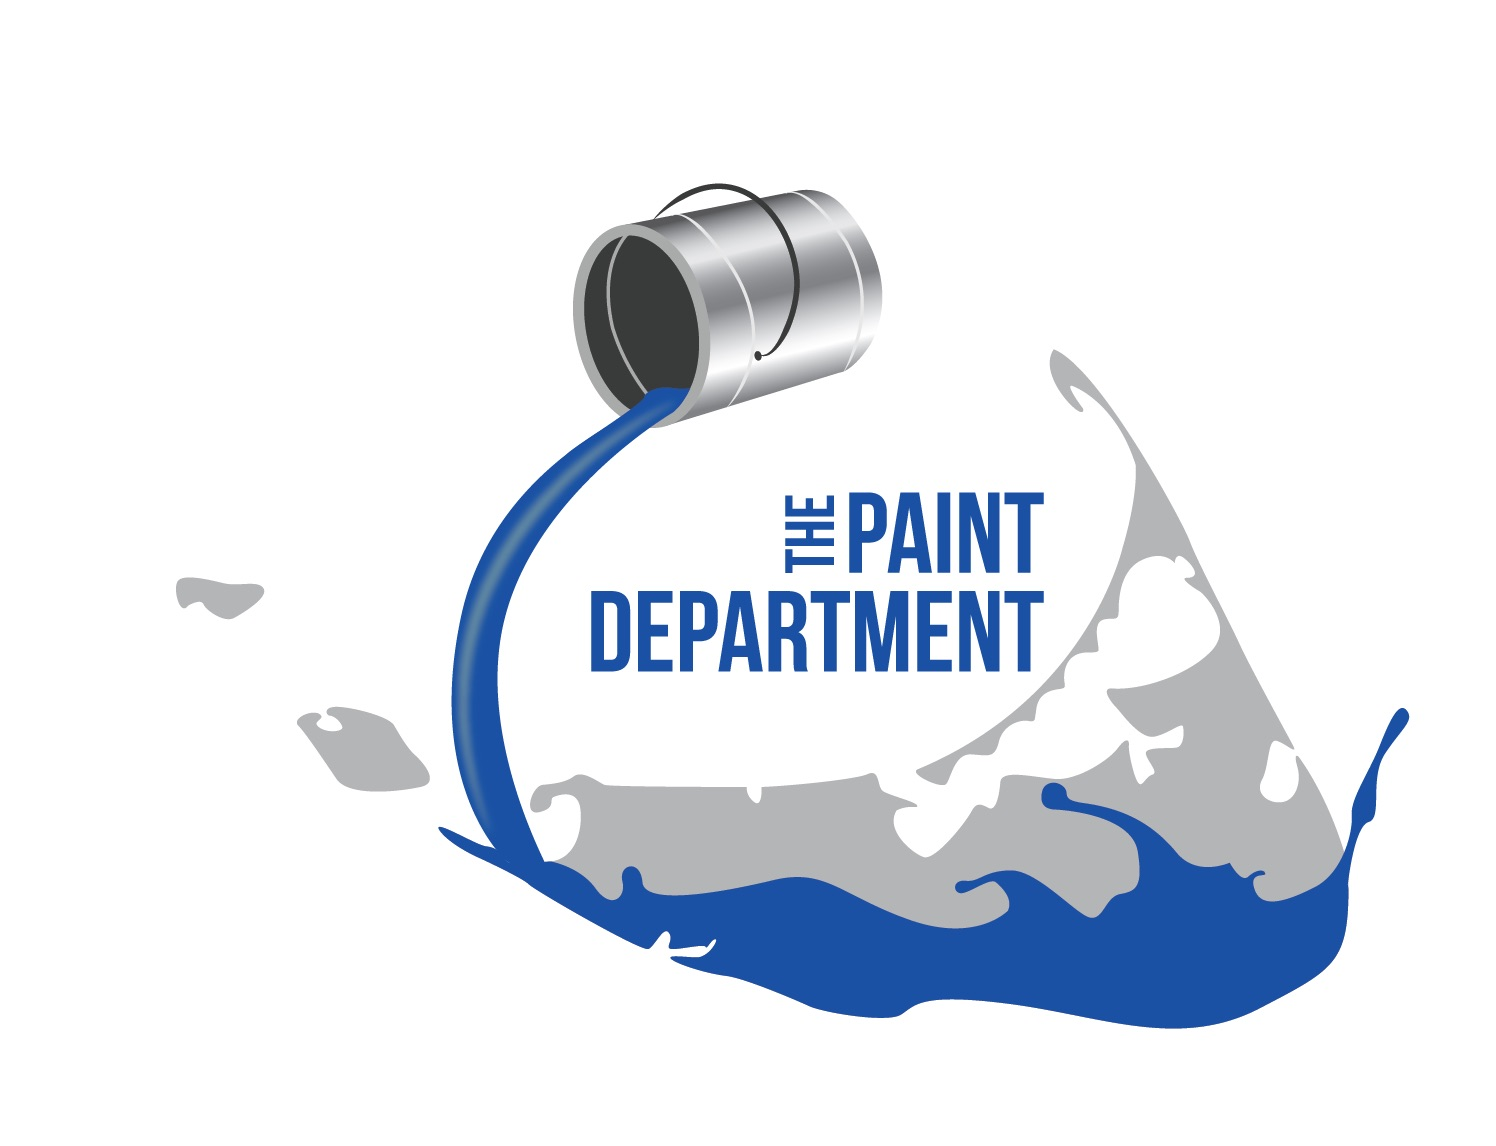 The Paint Department